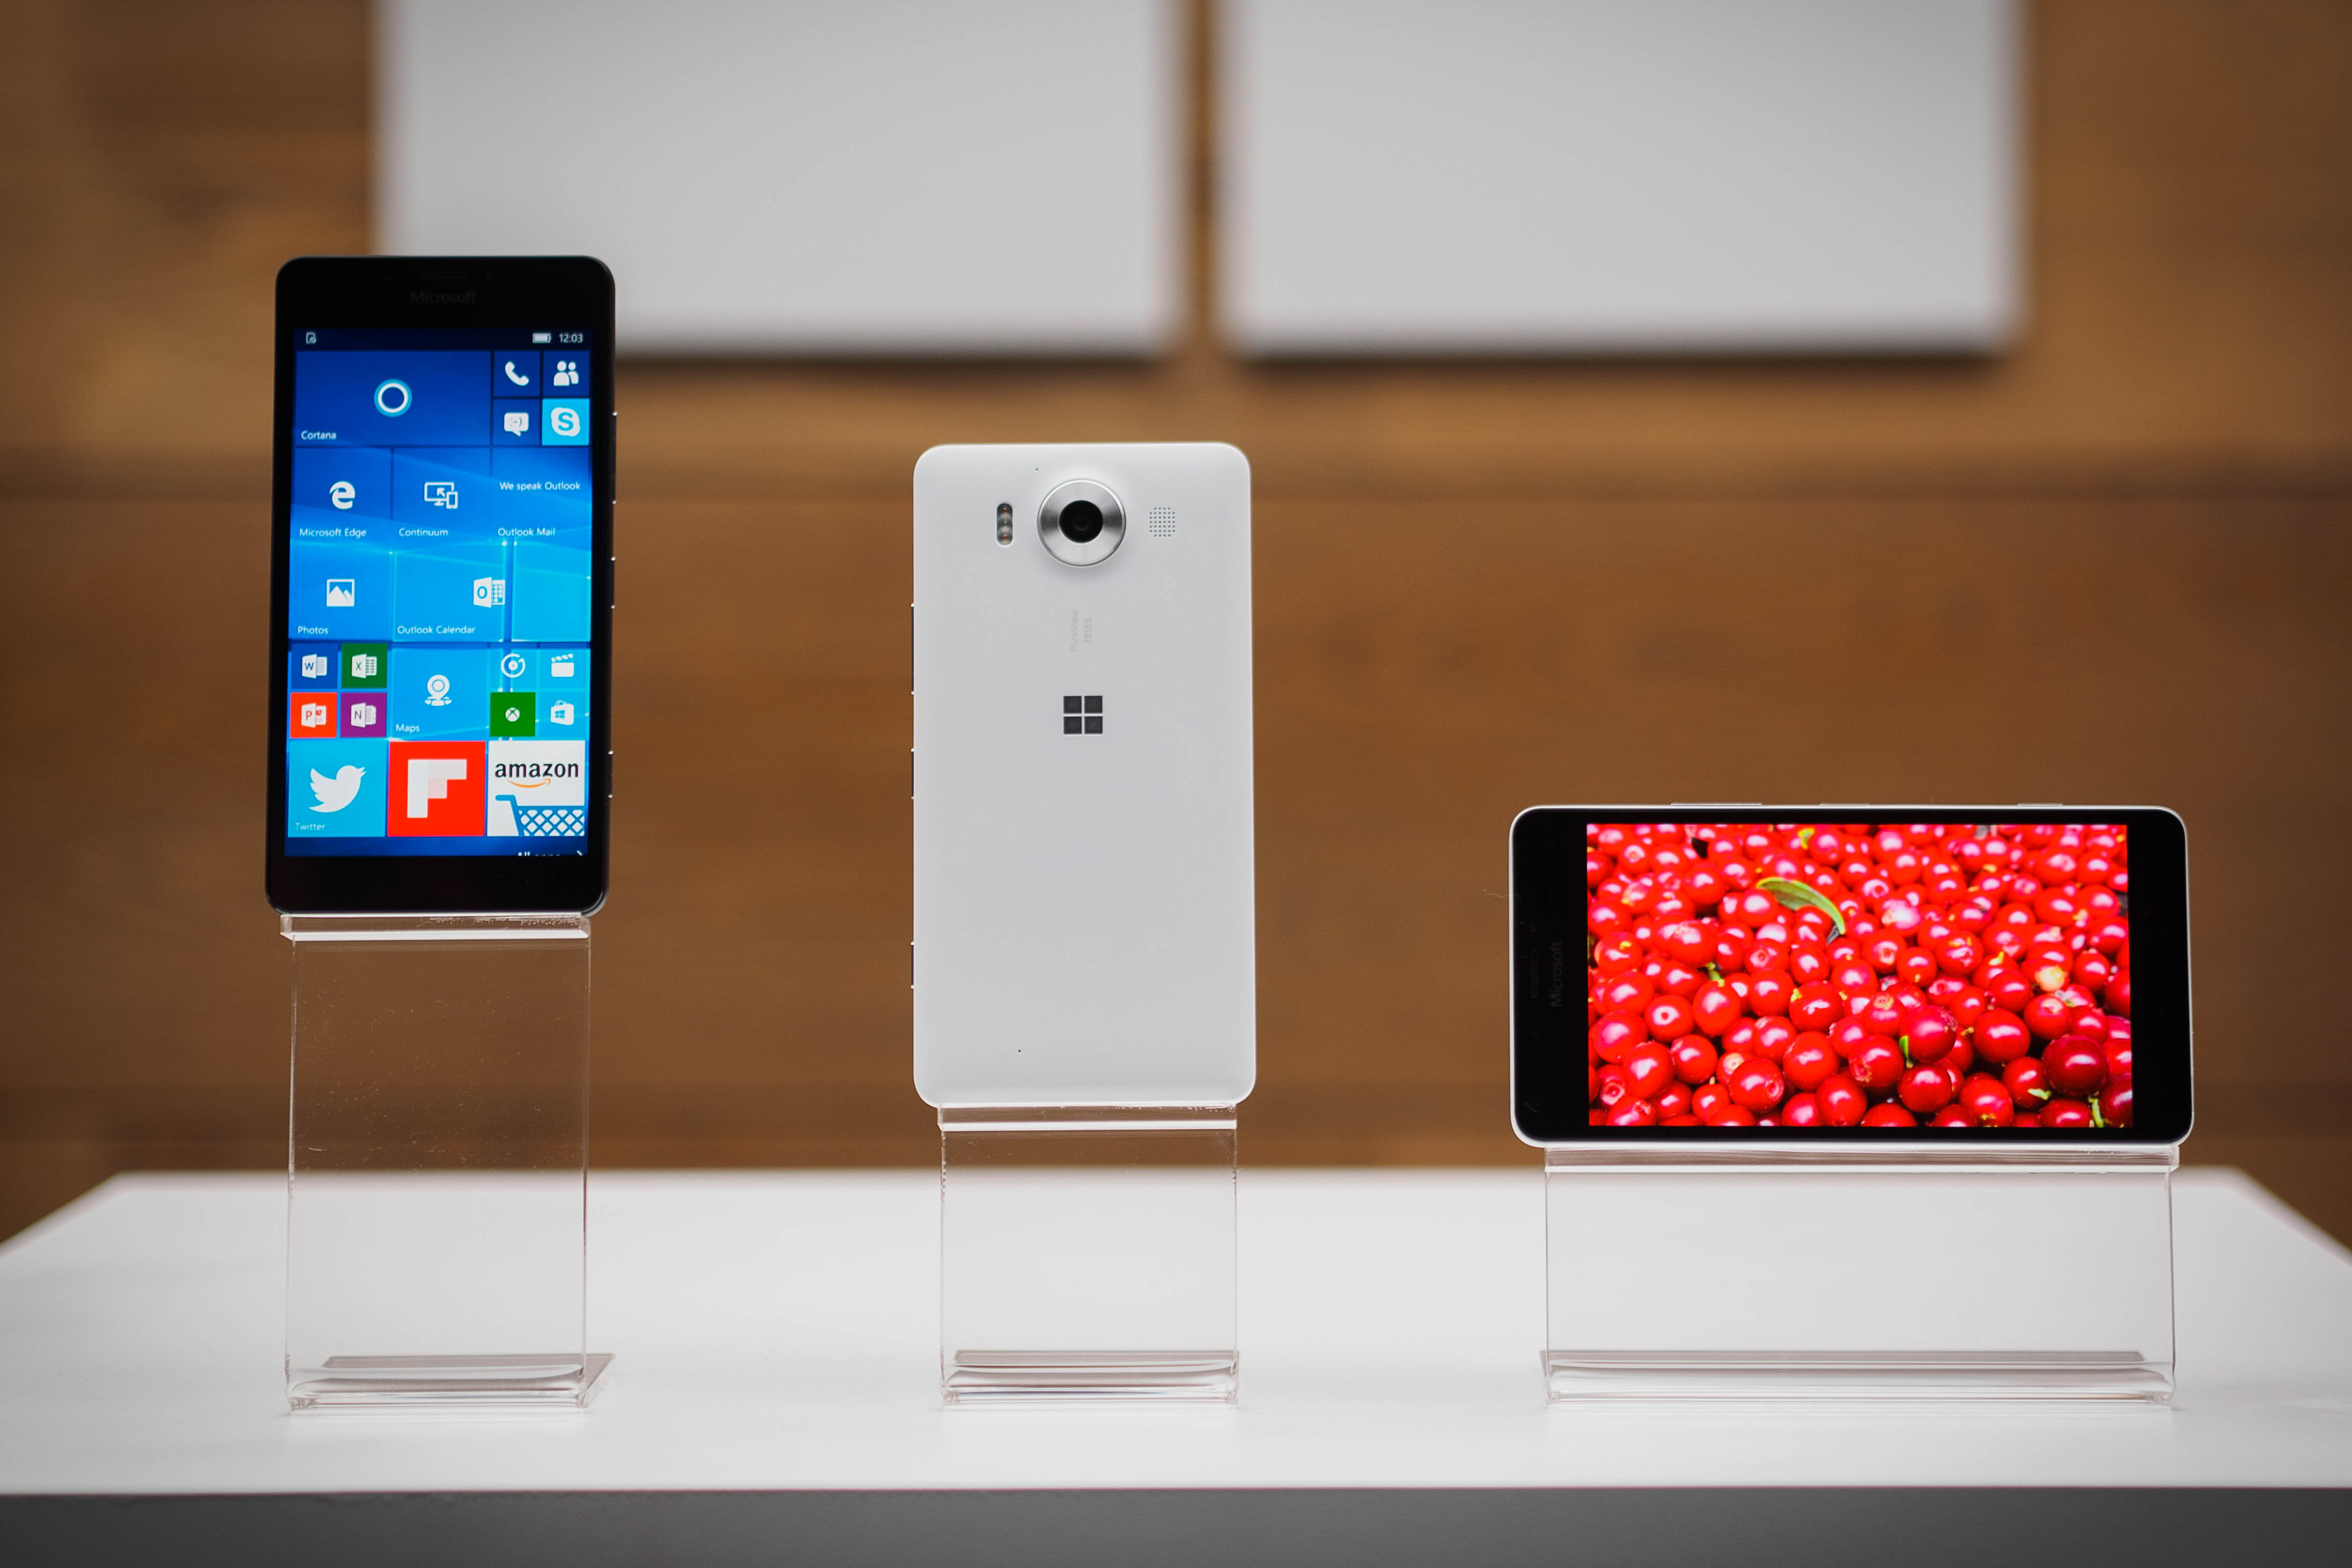 Microsoft's Lumia 950 and 950 XL are finally going on sale November 20 and 25